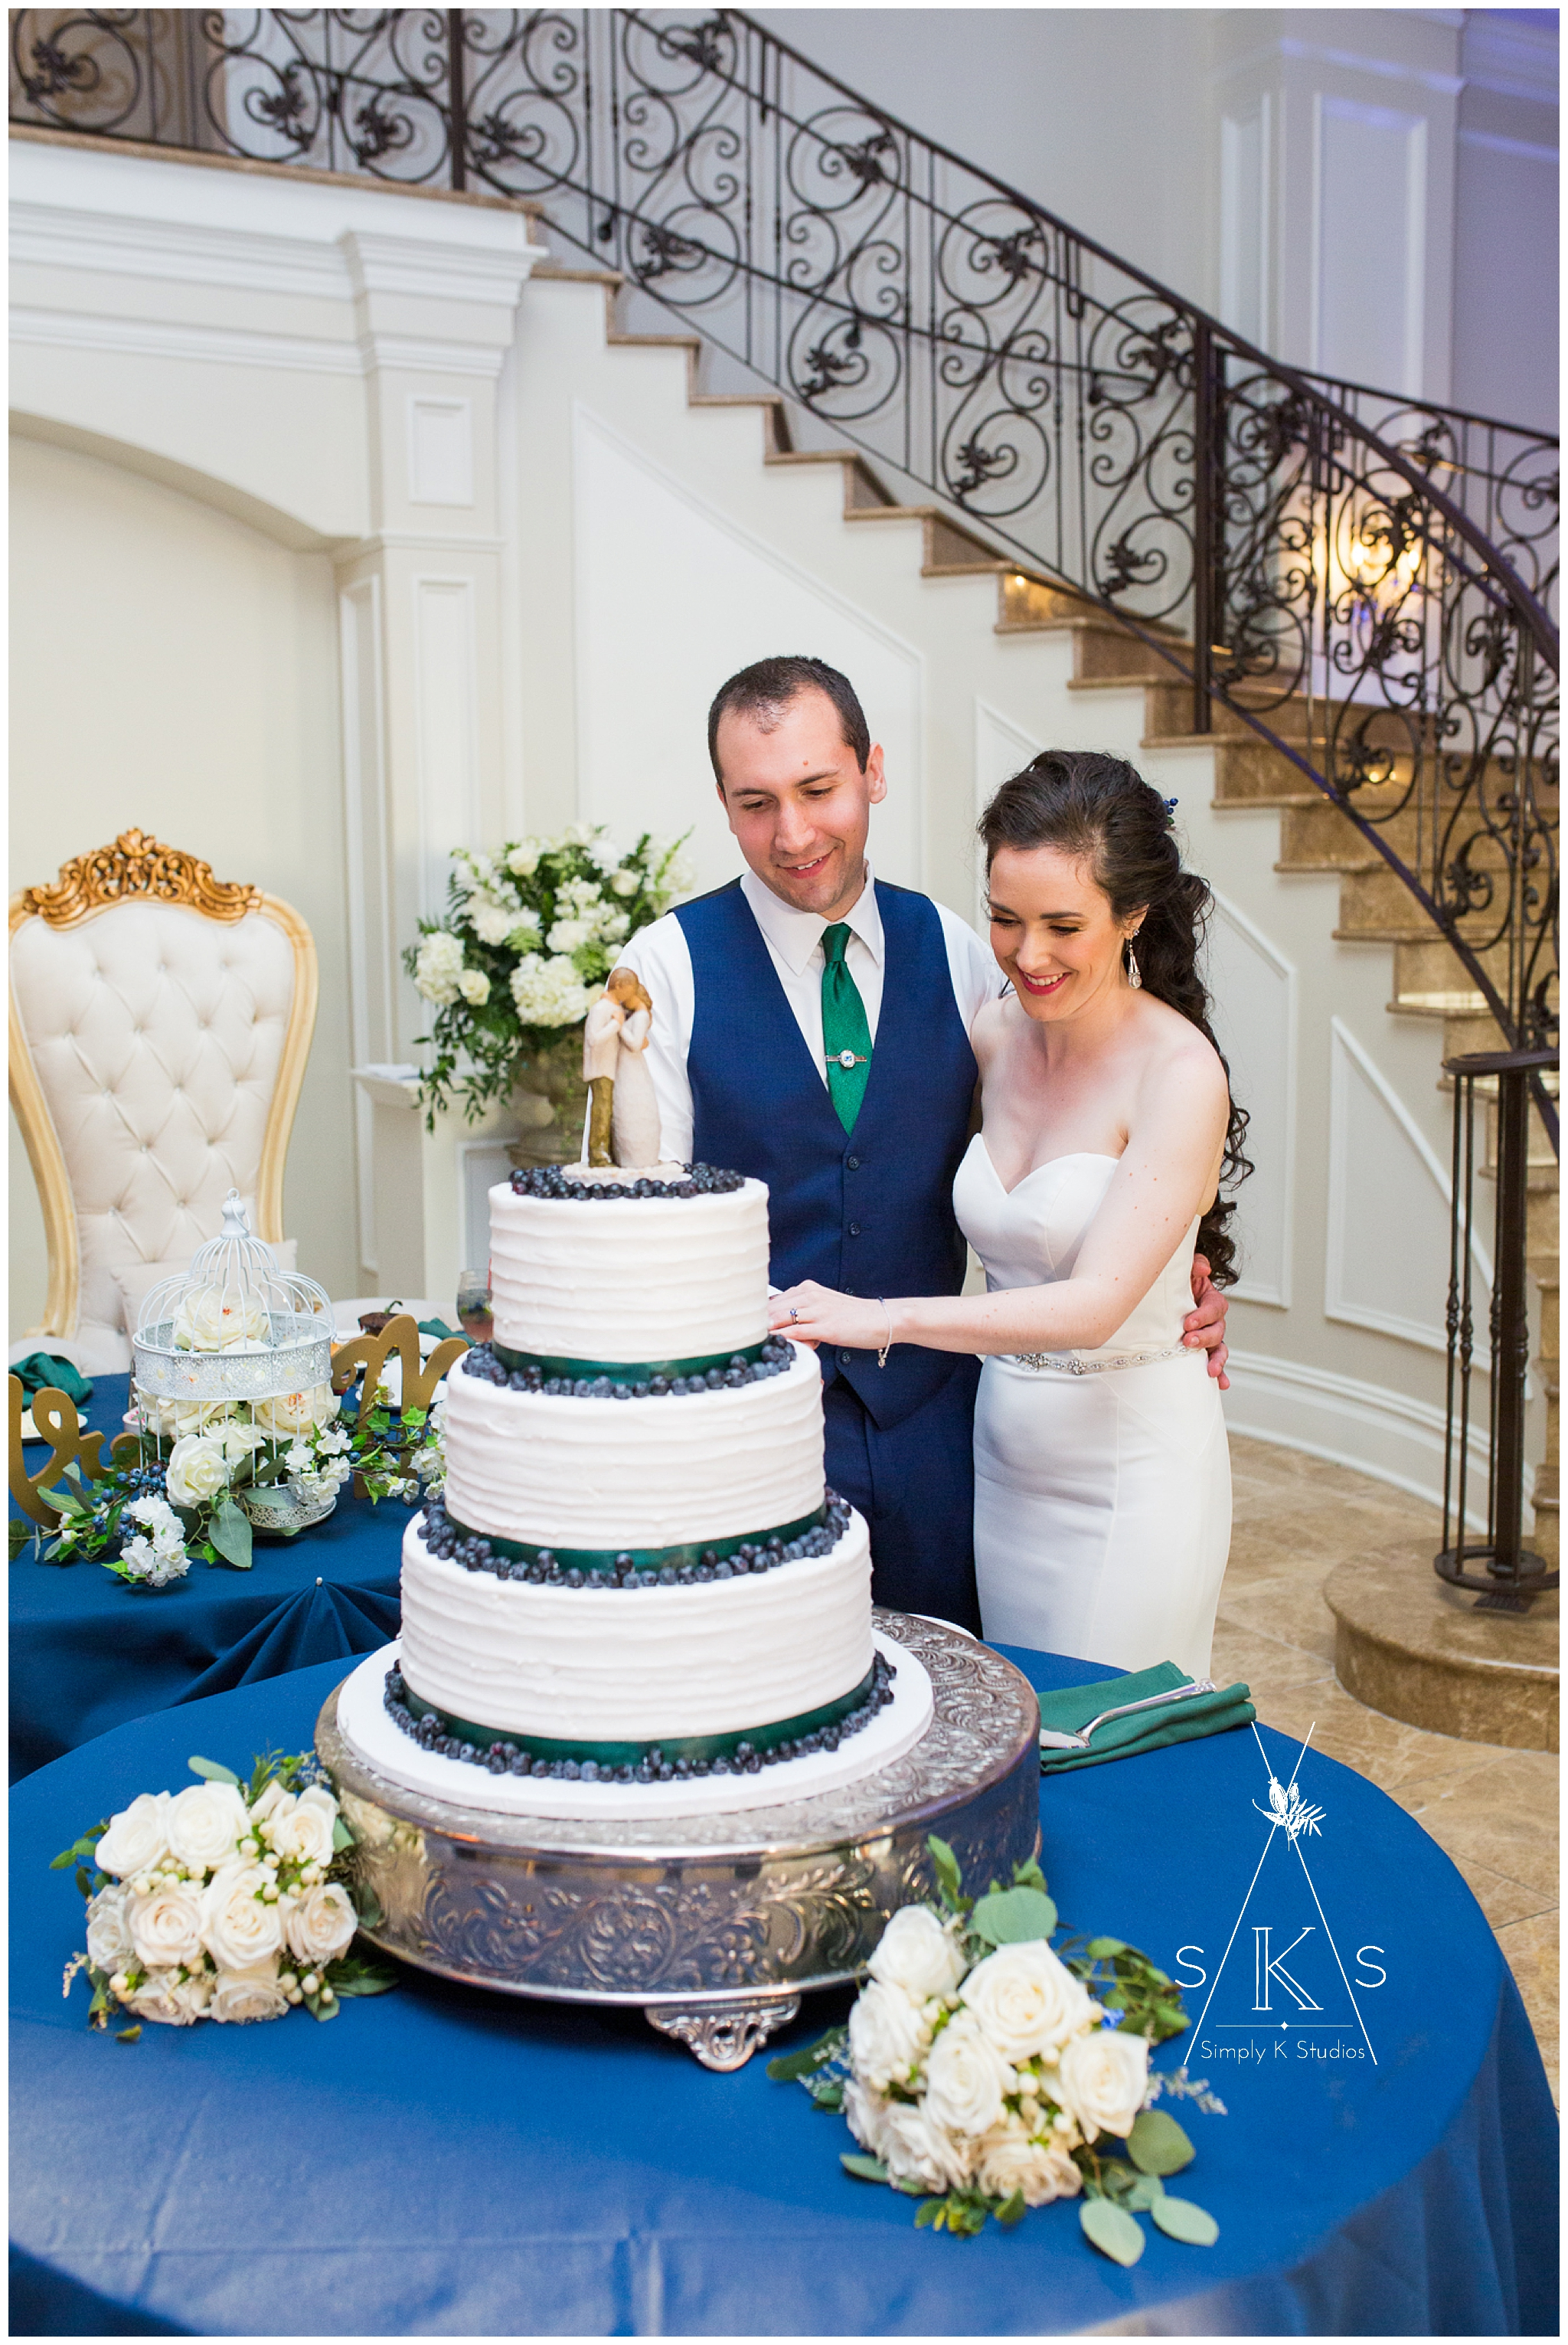 89 Wedding Cake Bakeries in Connecticut.jpg